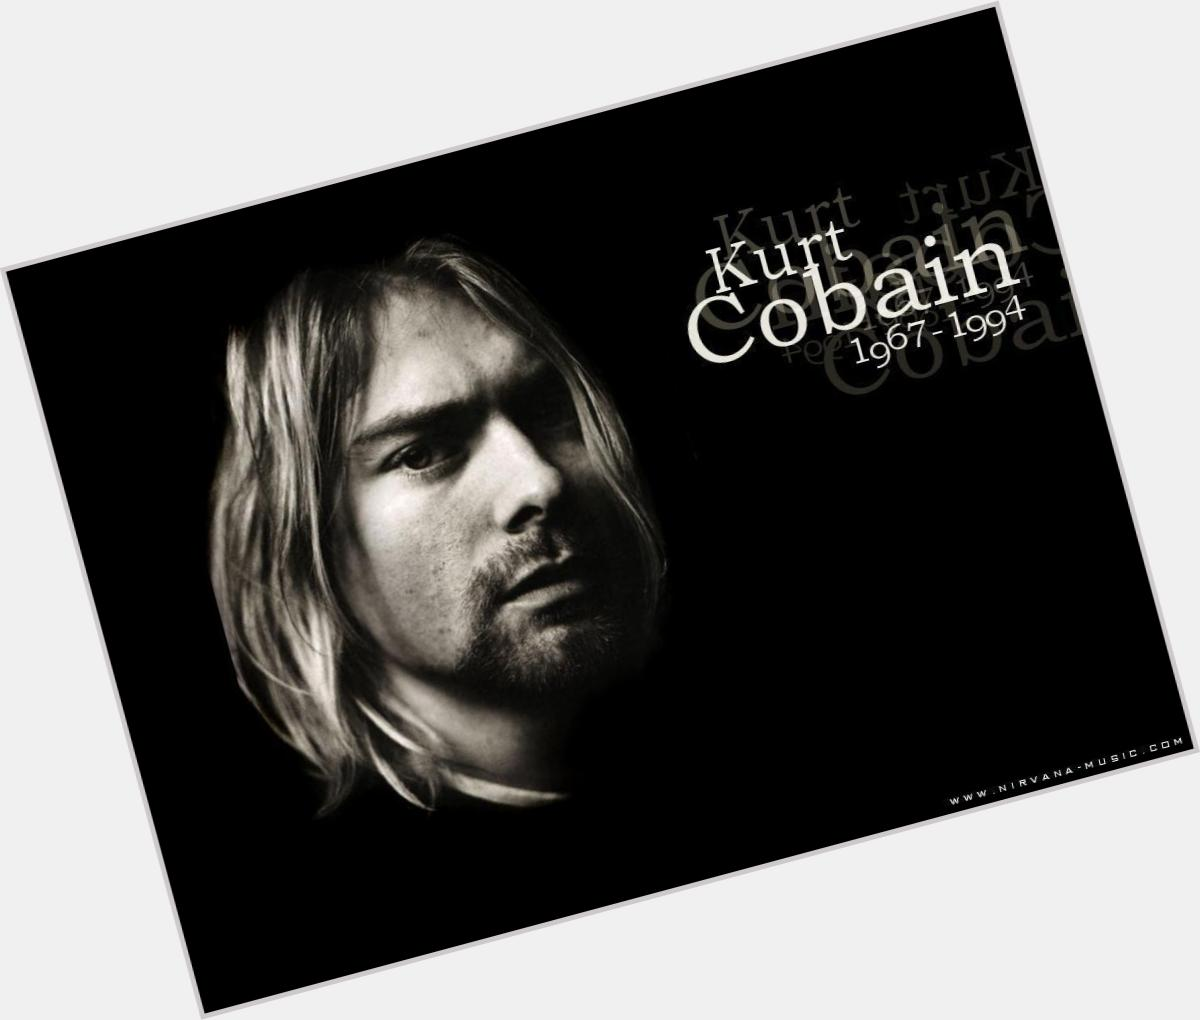 kurt cobain smoking 0.jpg